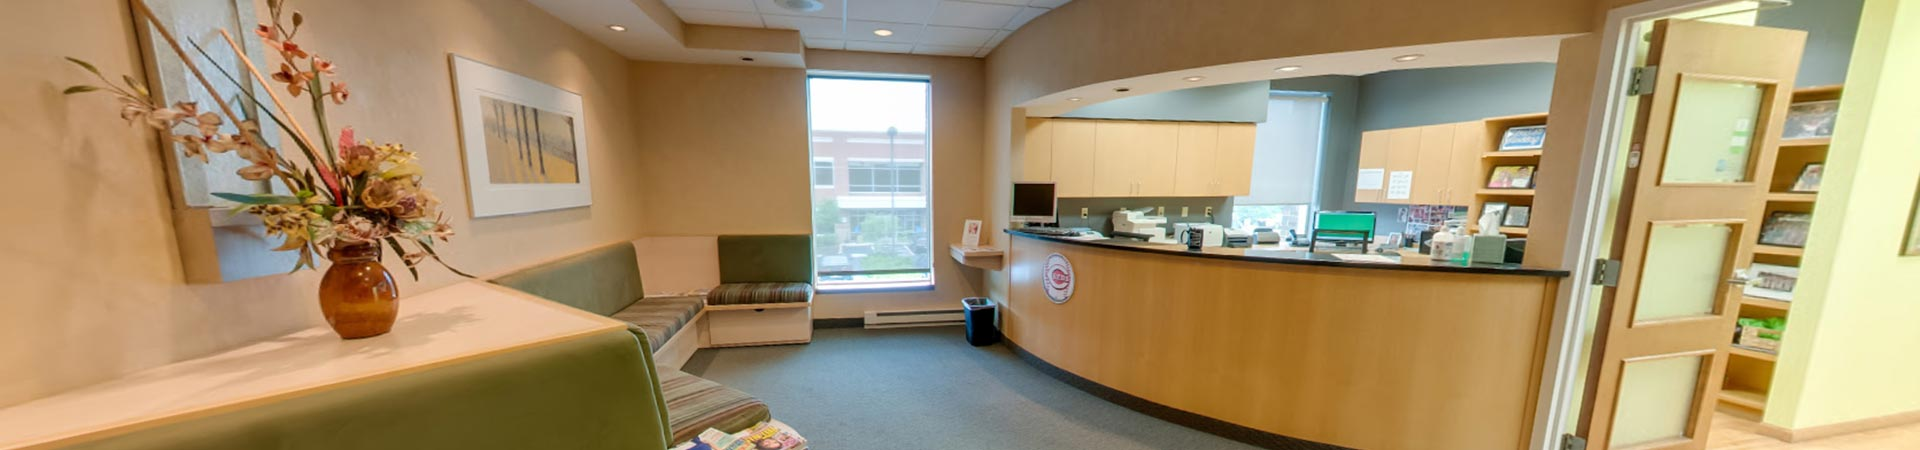 Cincinnati Waiting Room Northeast Orthodontic Specialists in Loveland Cincinnati OH